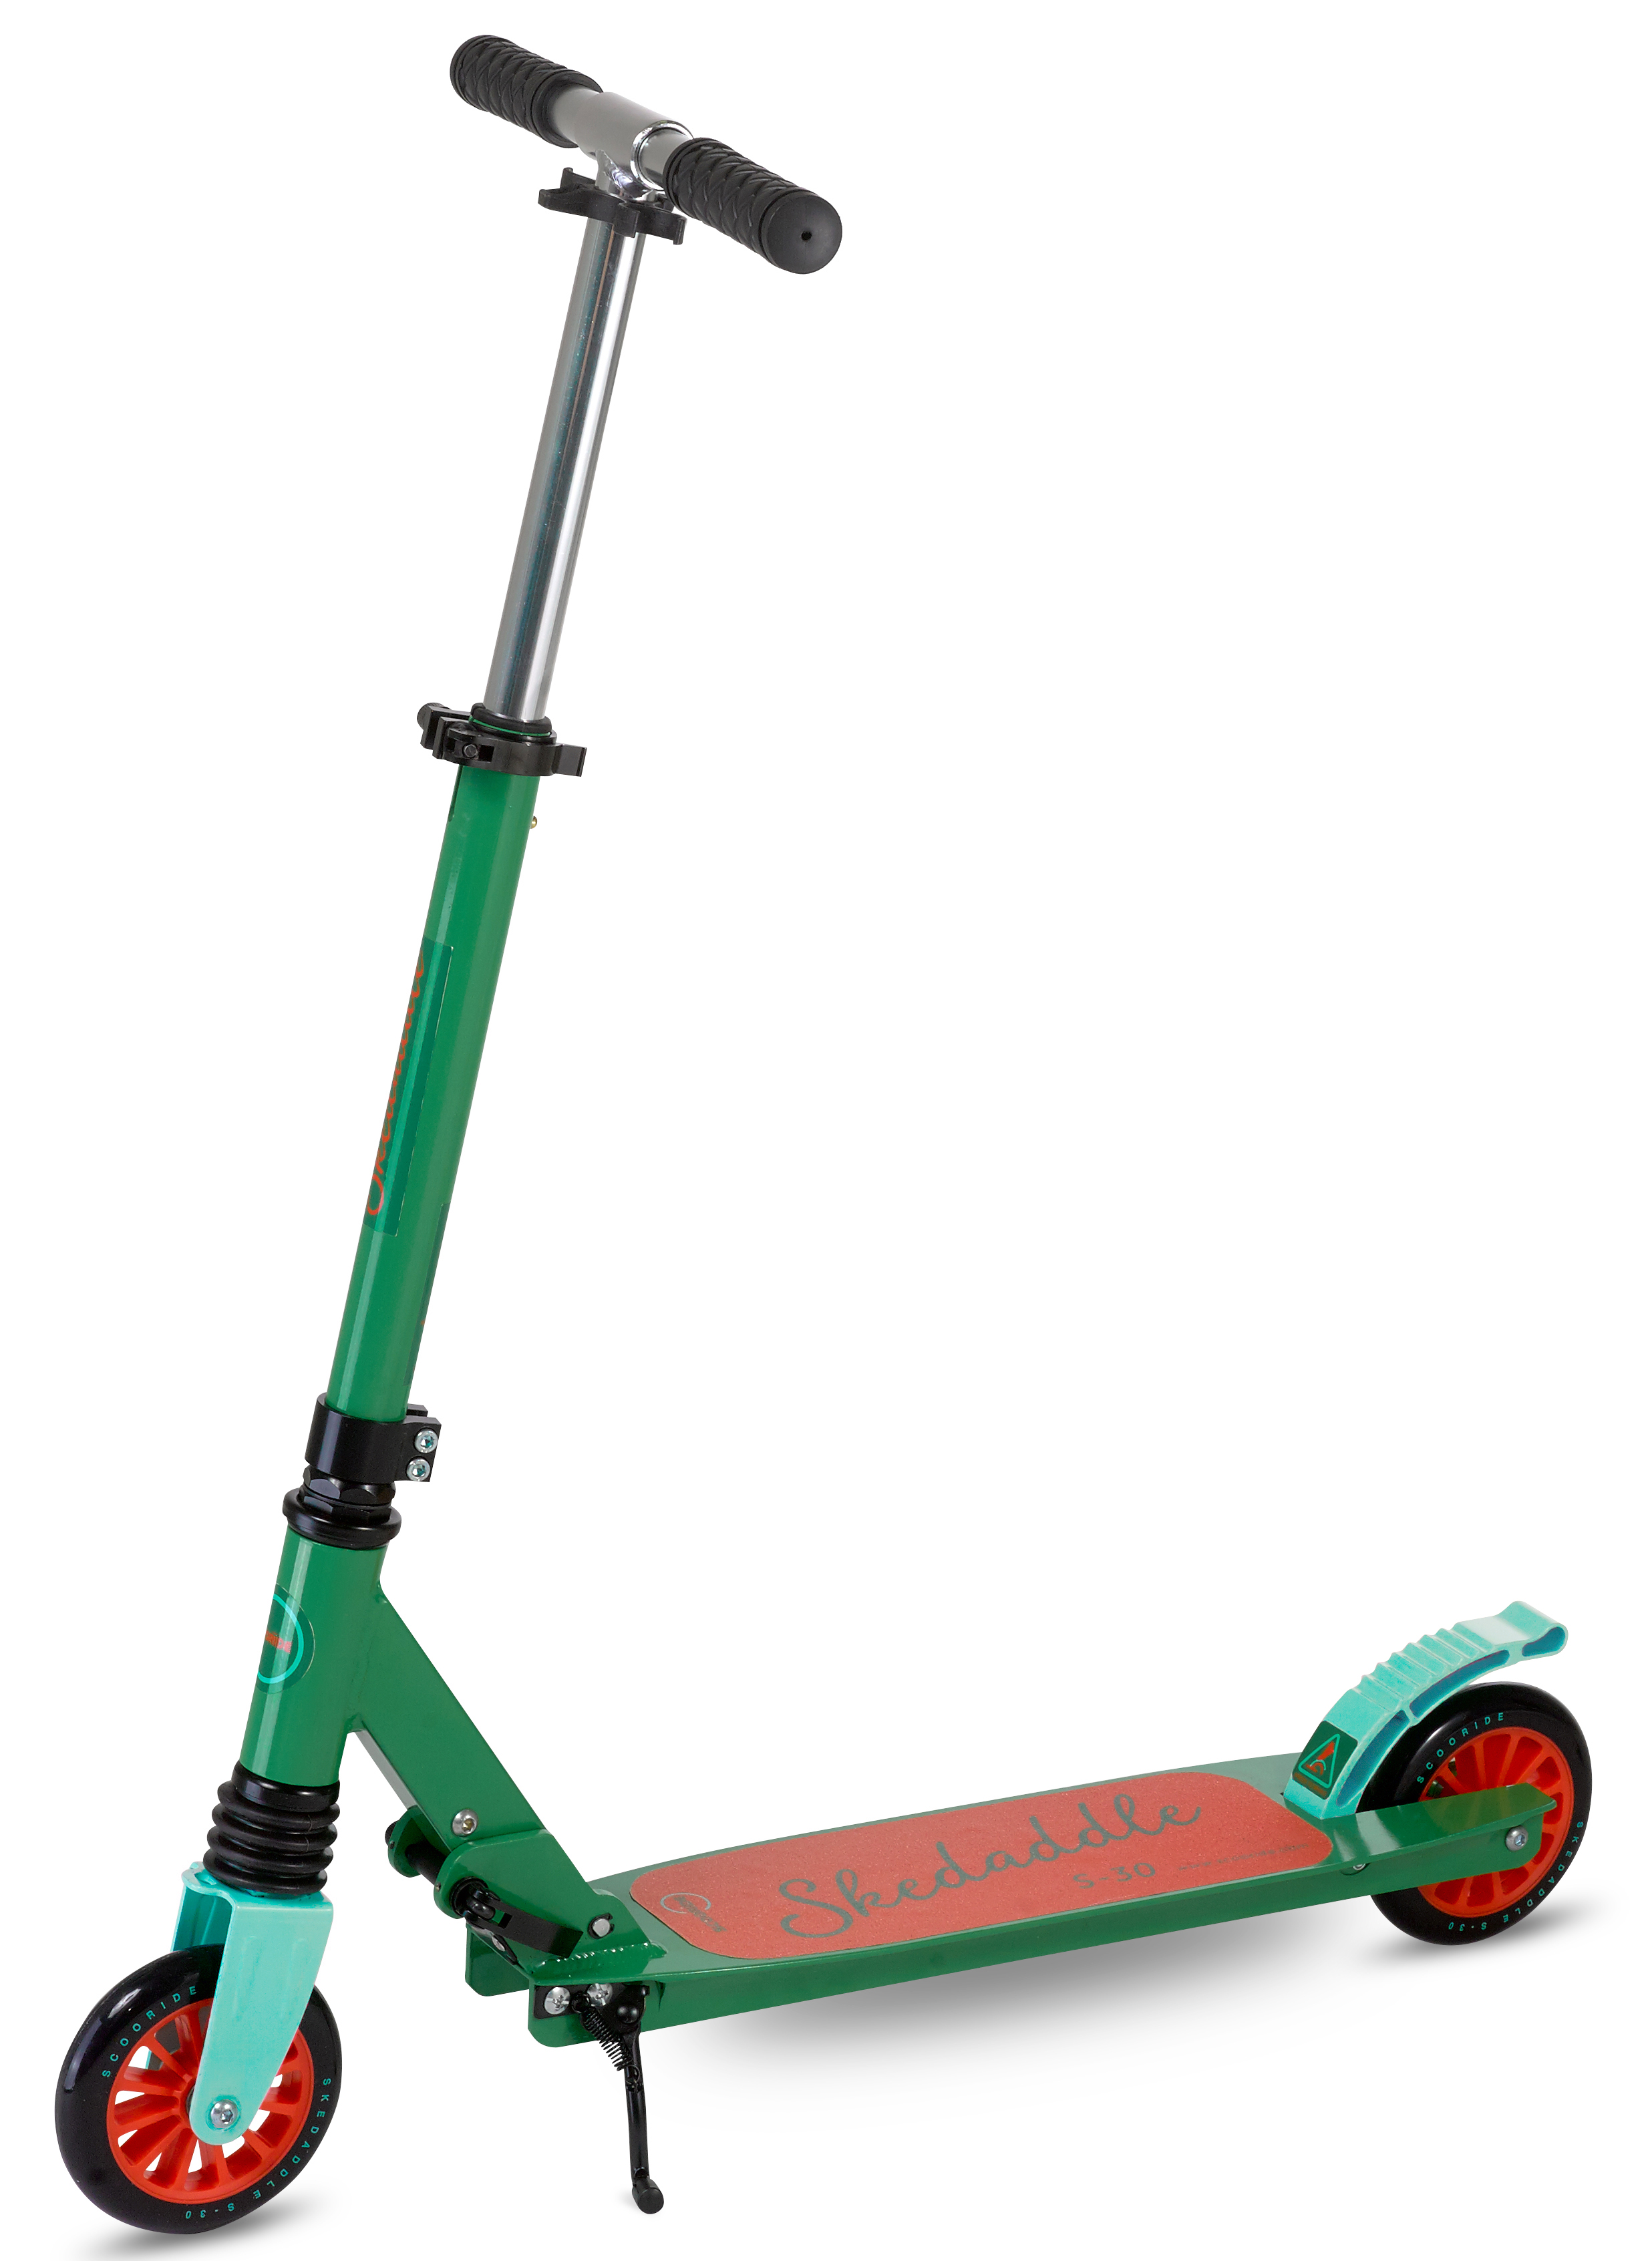 Scooride SRS01-GN Small Scooter, Green